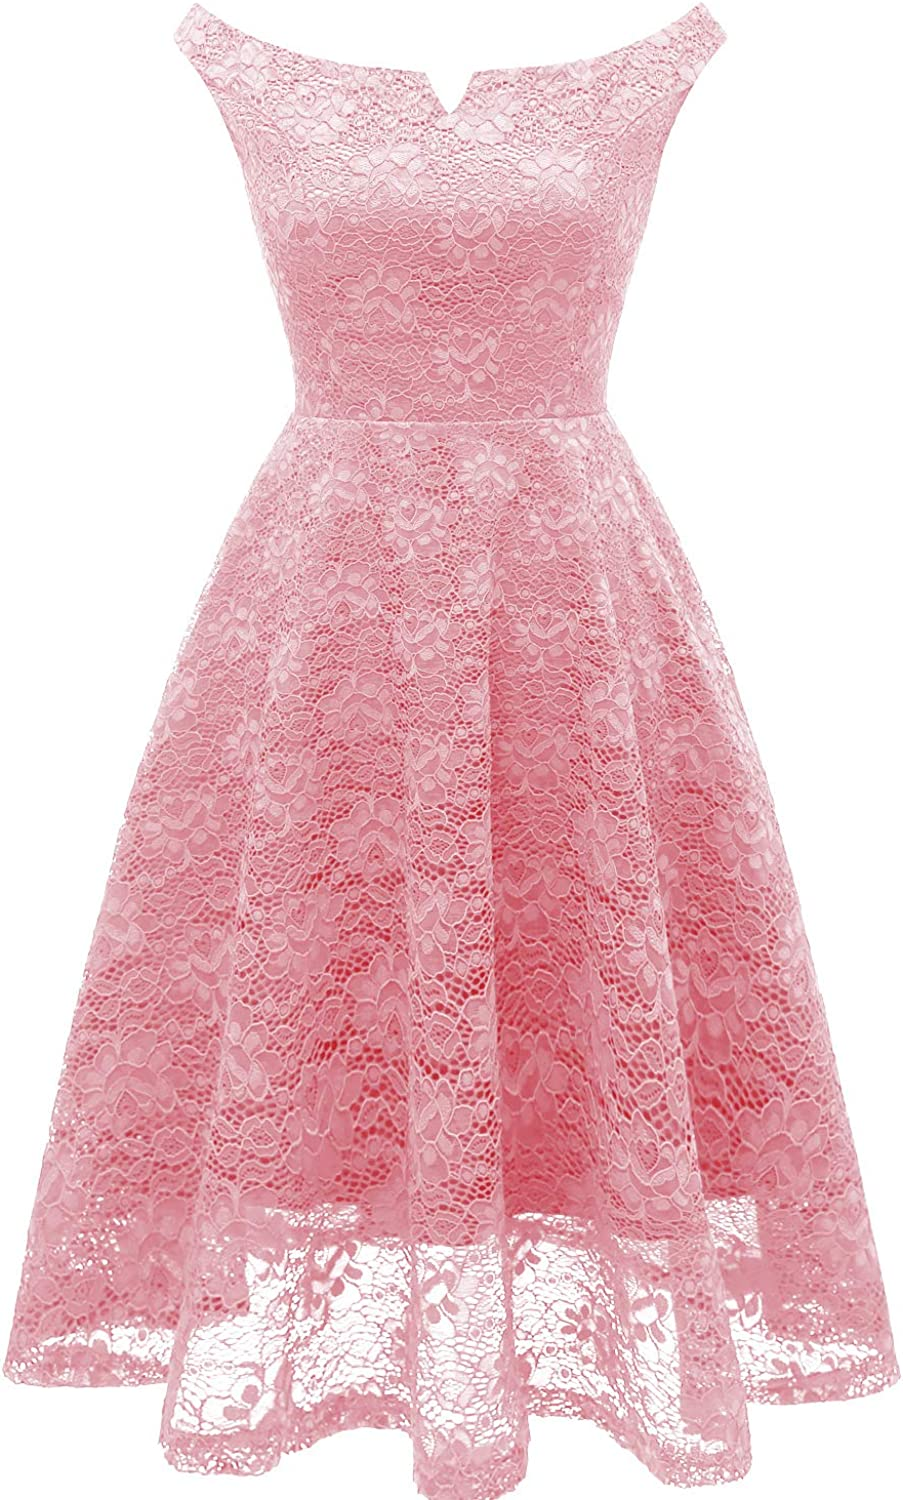 EvoLand Womens Off The Shoulder Lace Bridesmaid Cocktail Party Dress